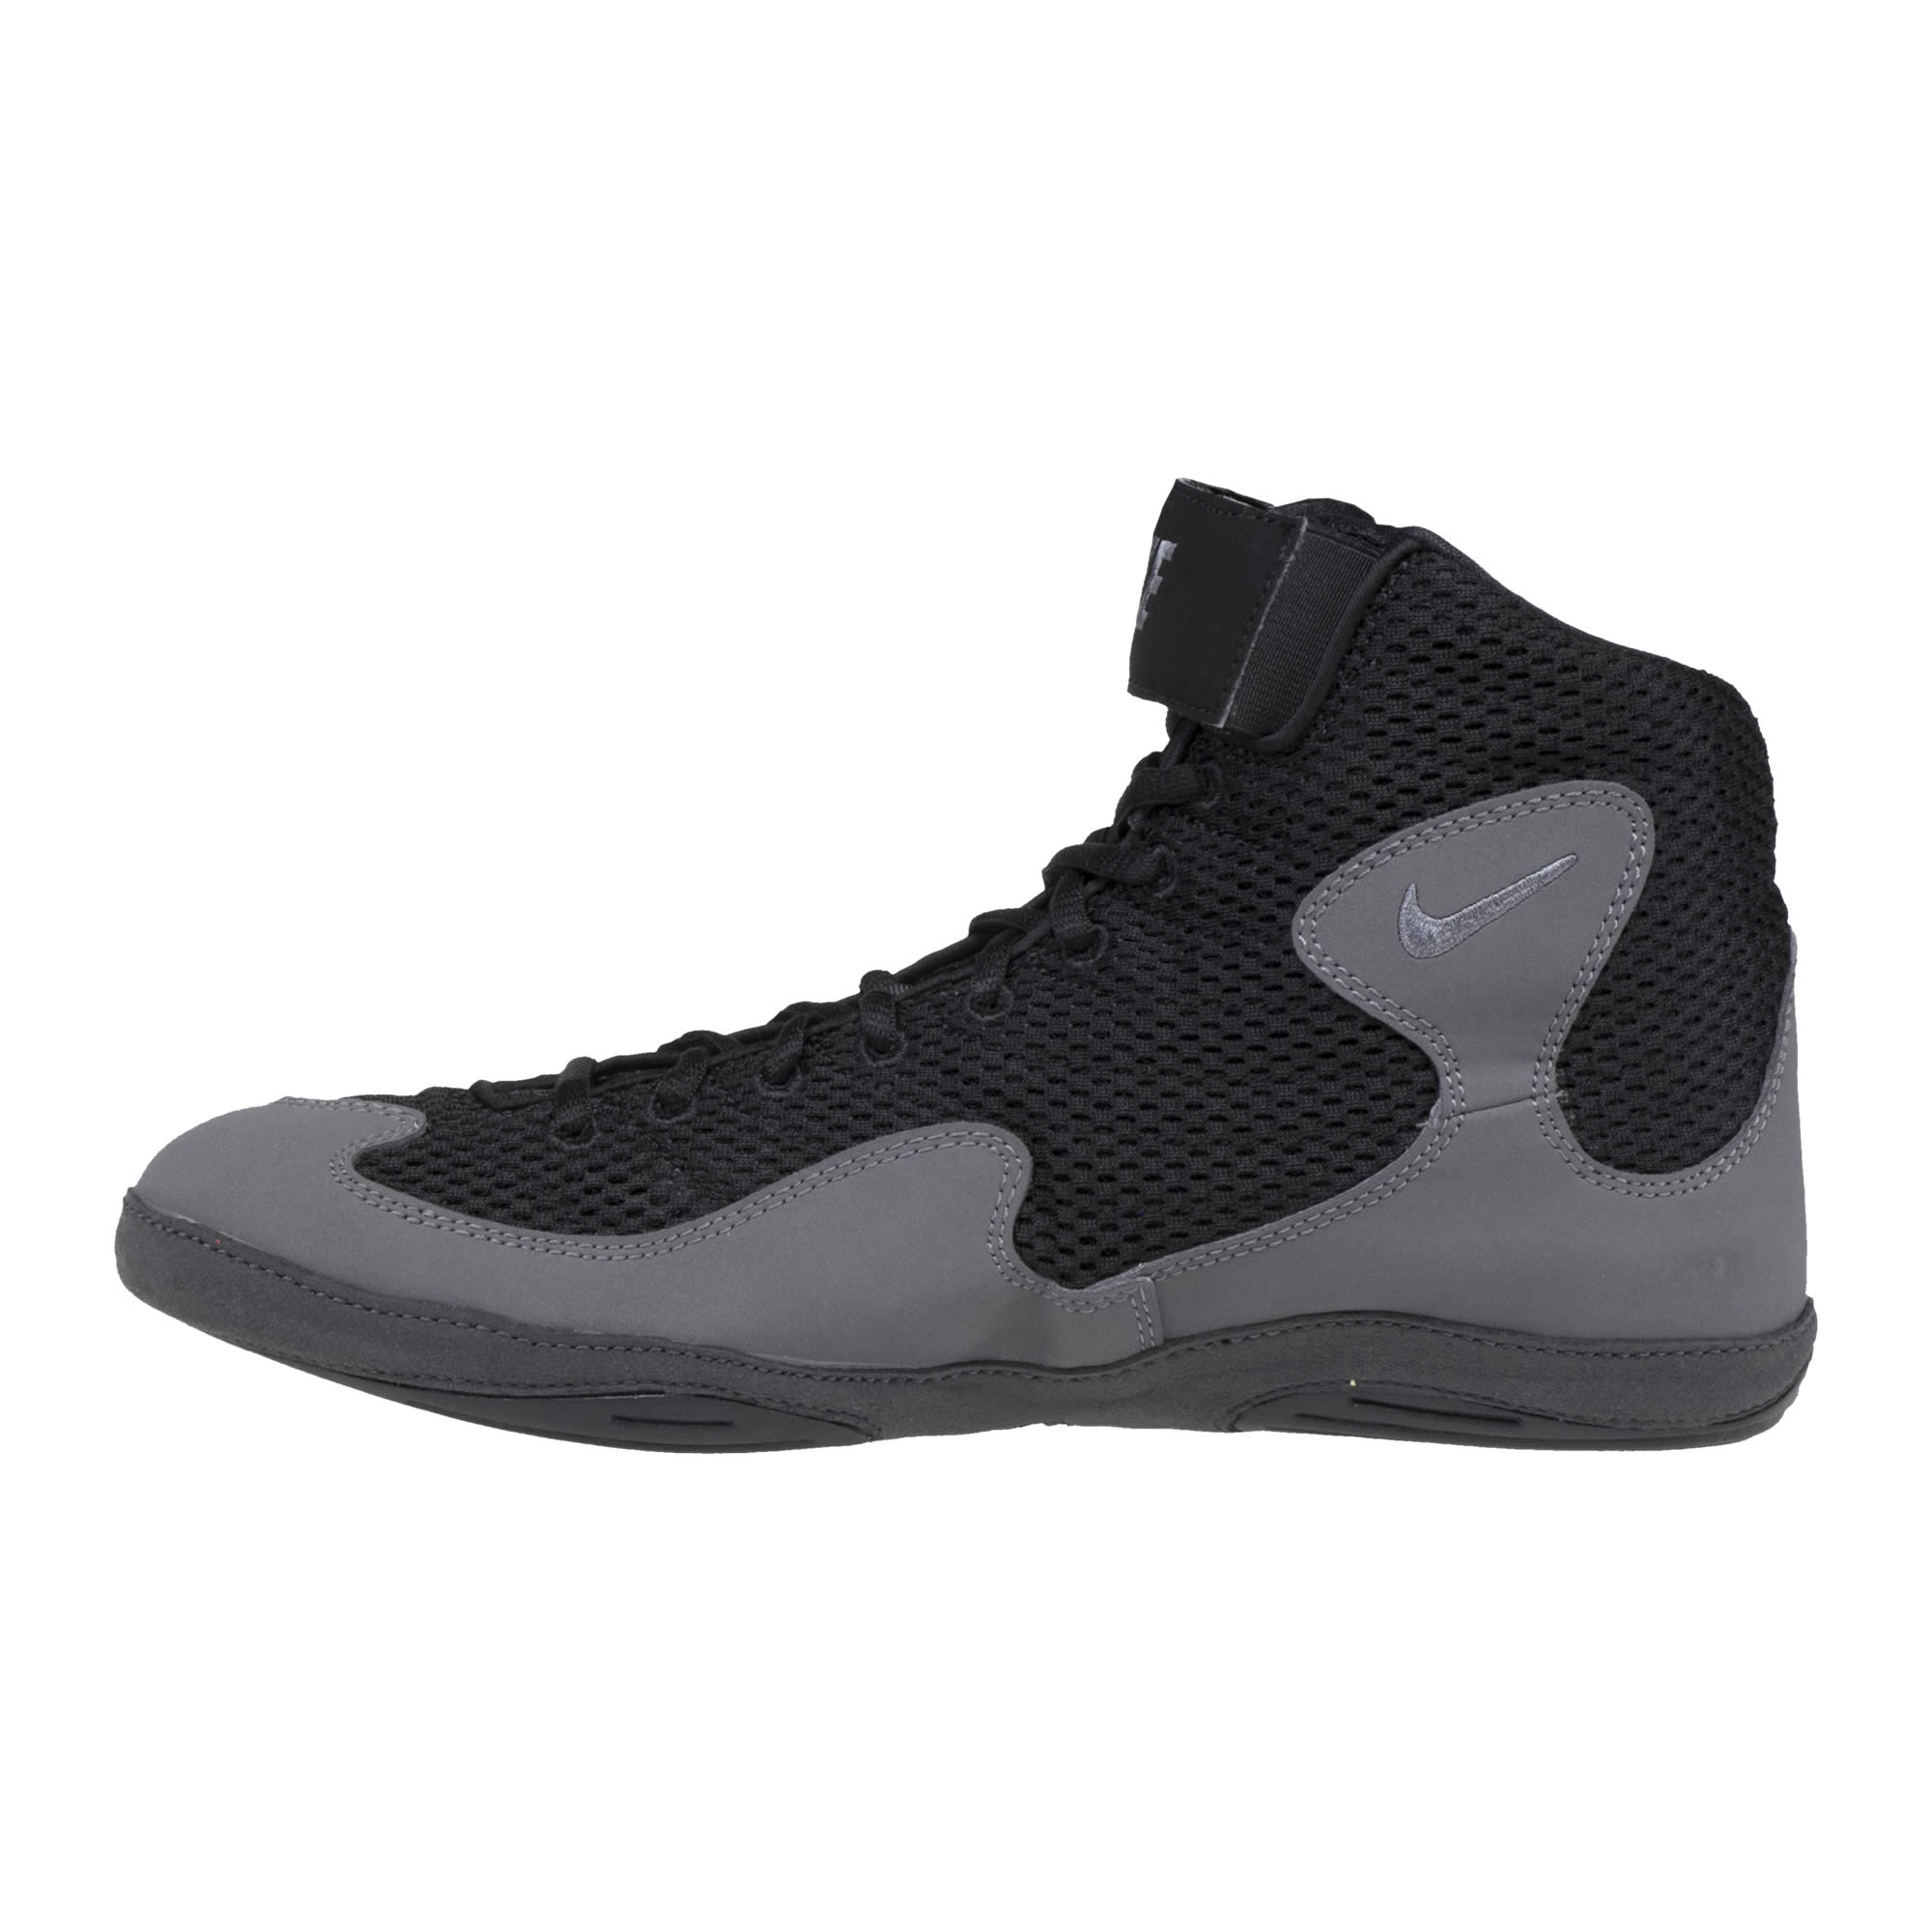 d6a52b9a2bc Nike Inflict 3 Black Grey outsideNike Inflict 3 Black Grey ...